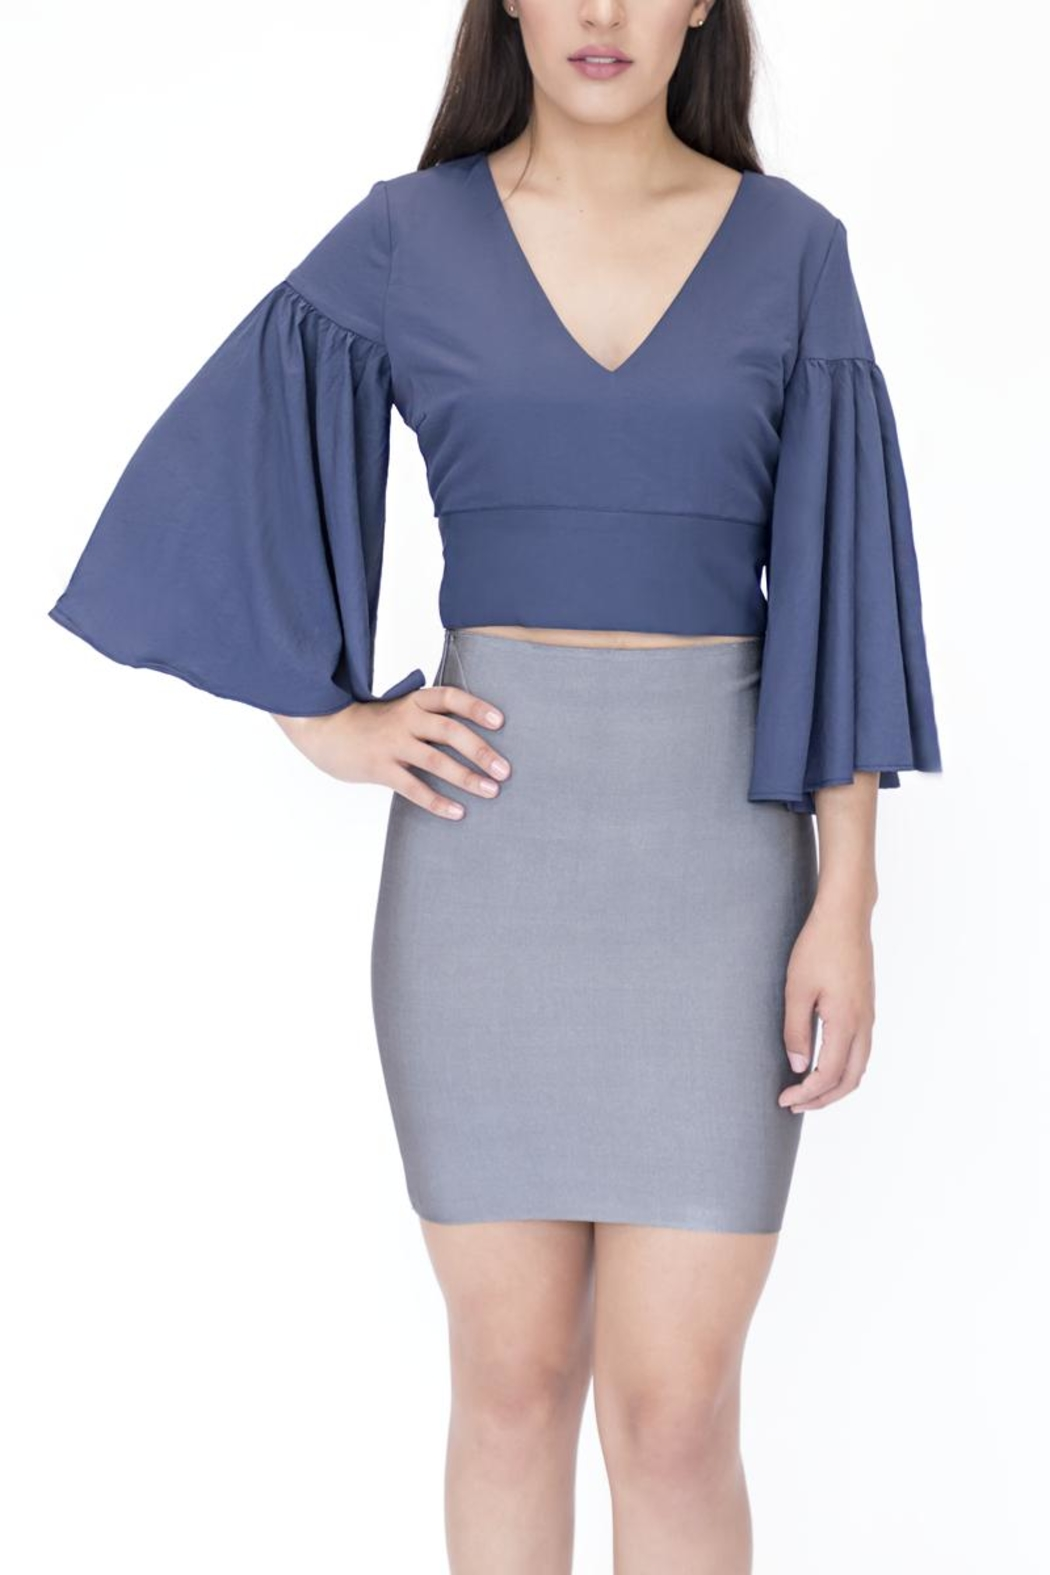 essue Top Flared Sleeve Top - Front Full Image